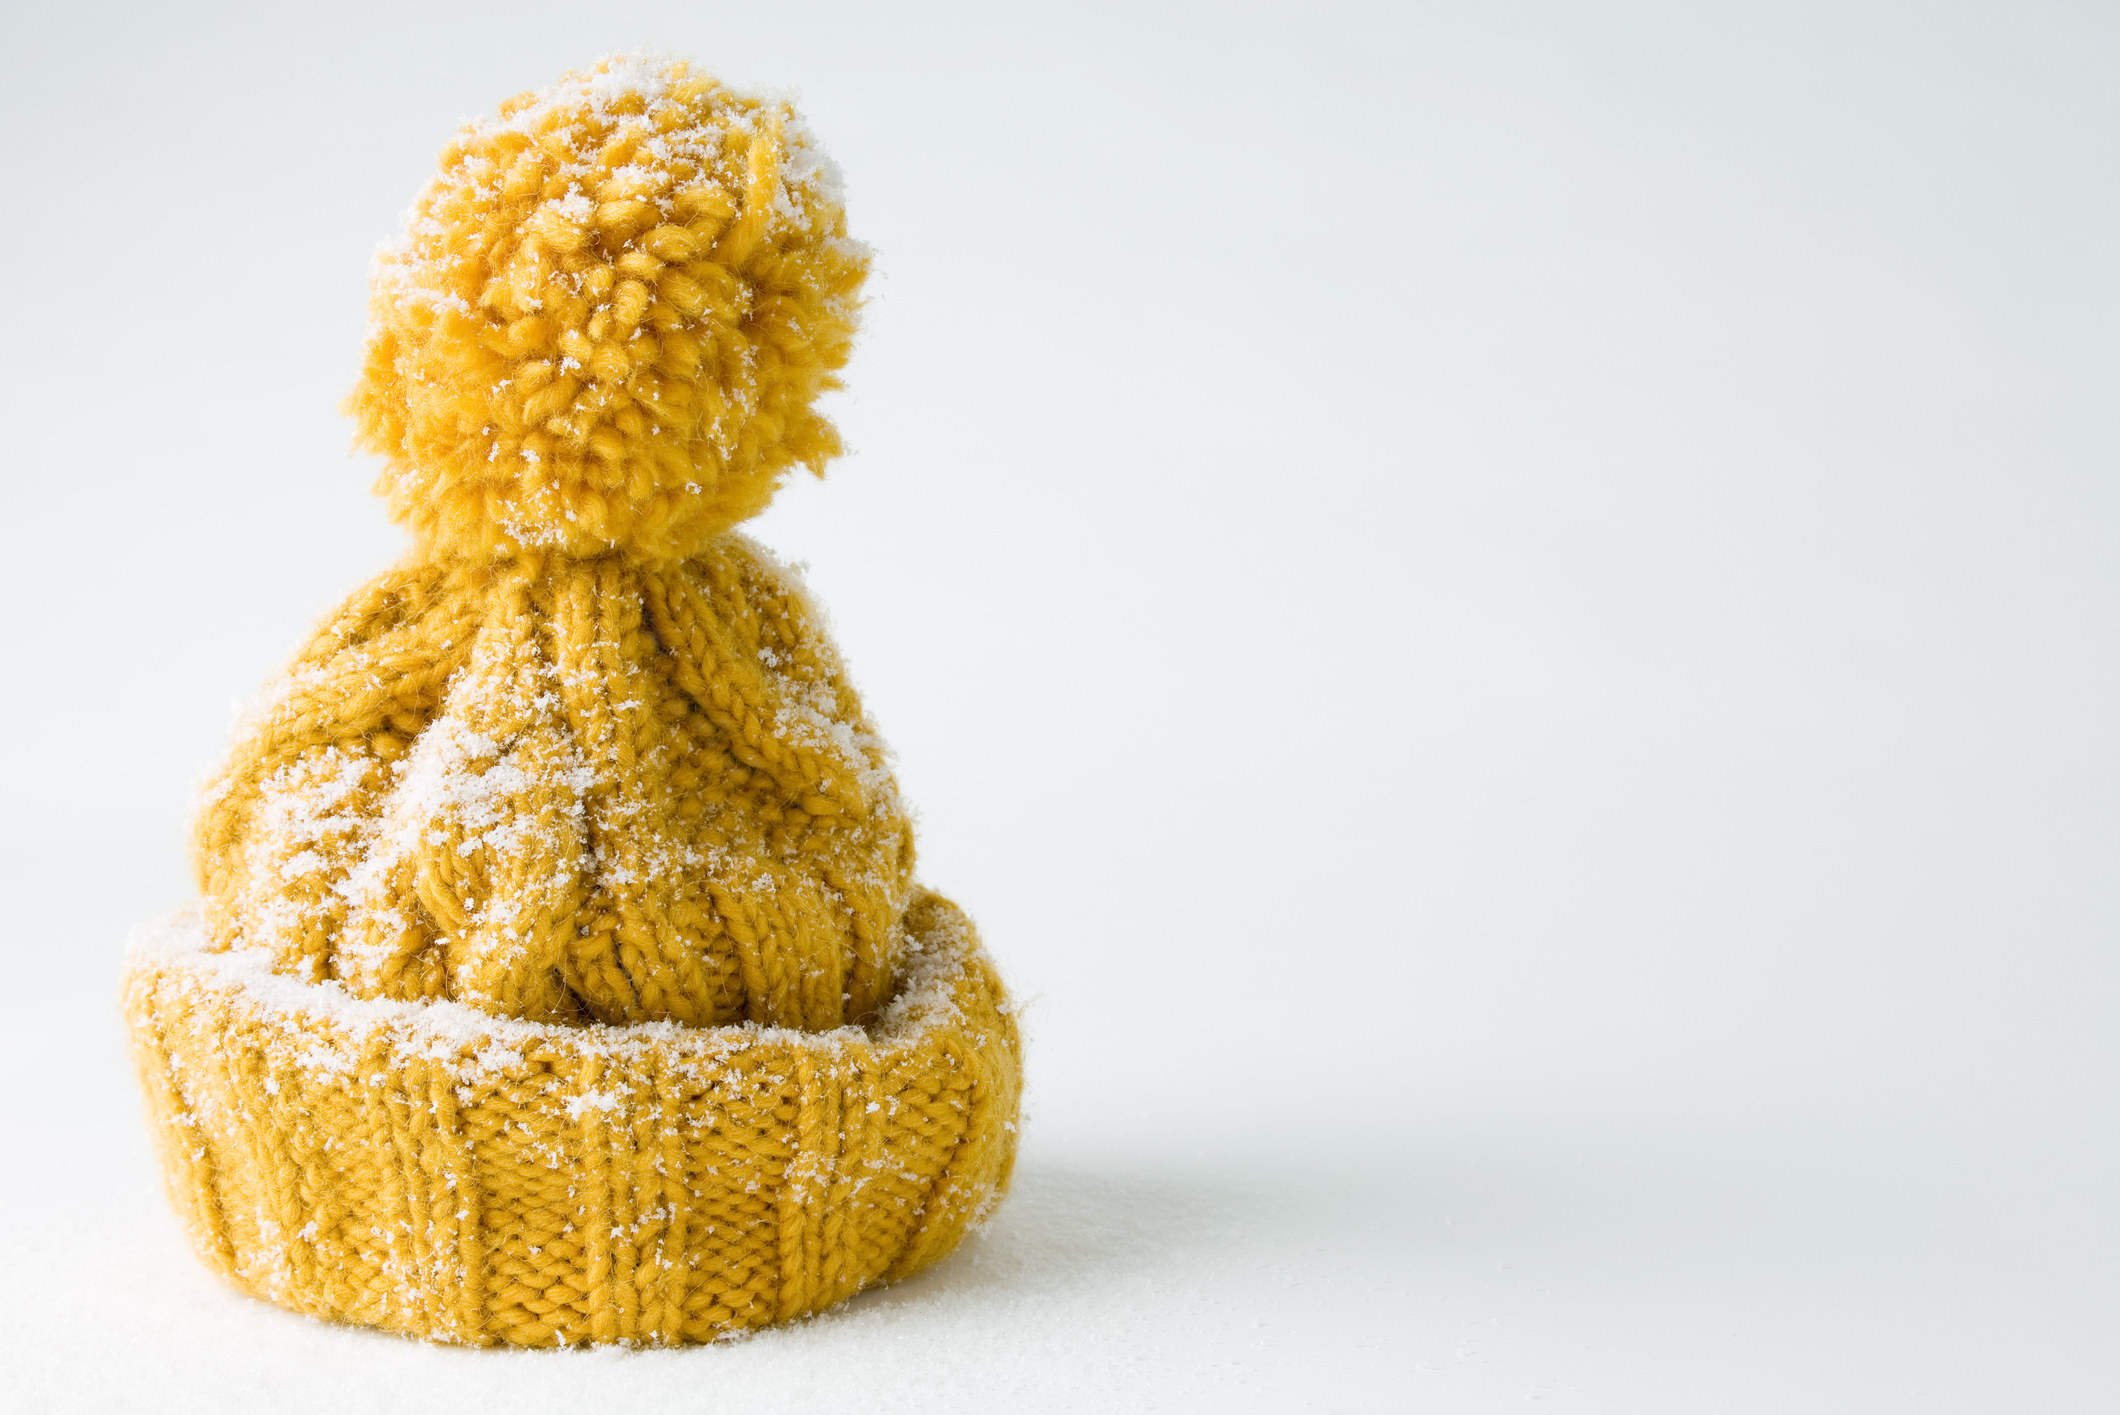 Knit yellow hat covered in snow.